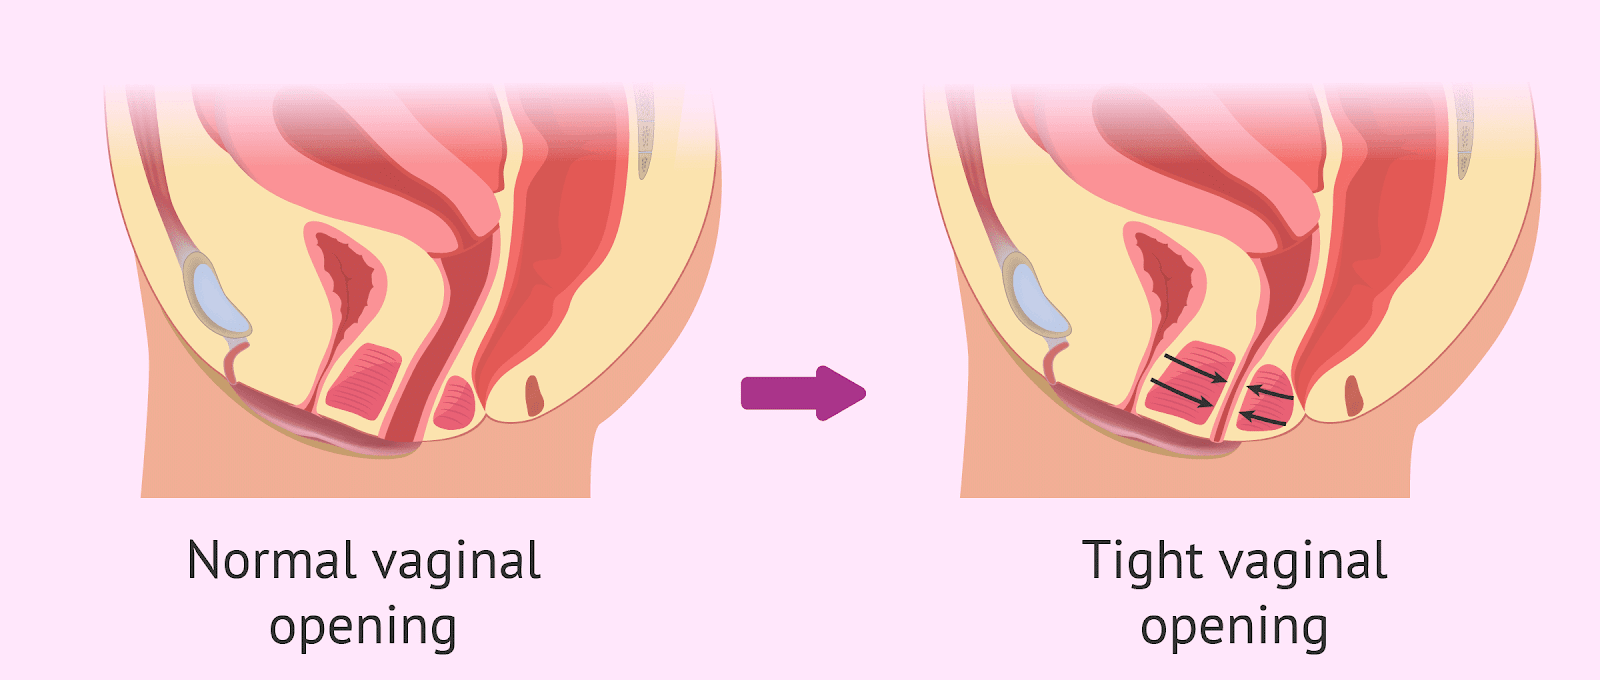 Medical diagram of Vaginismis